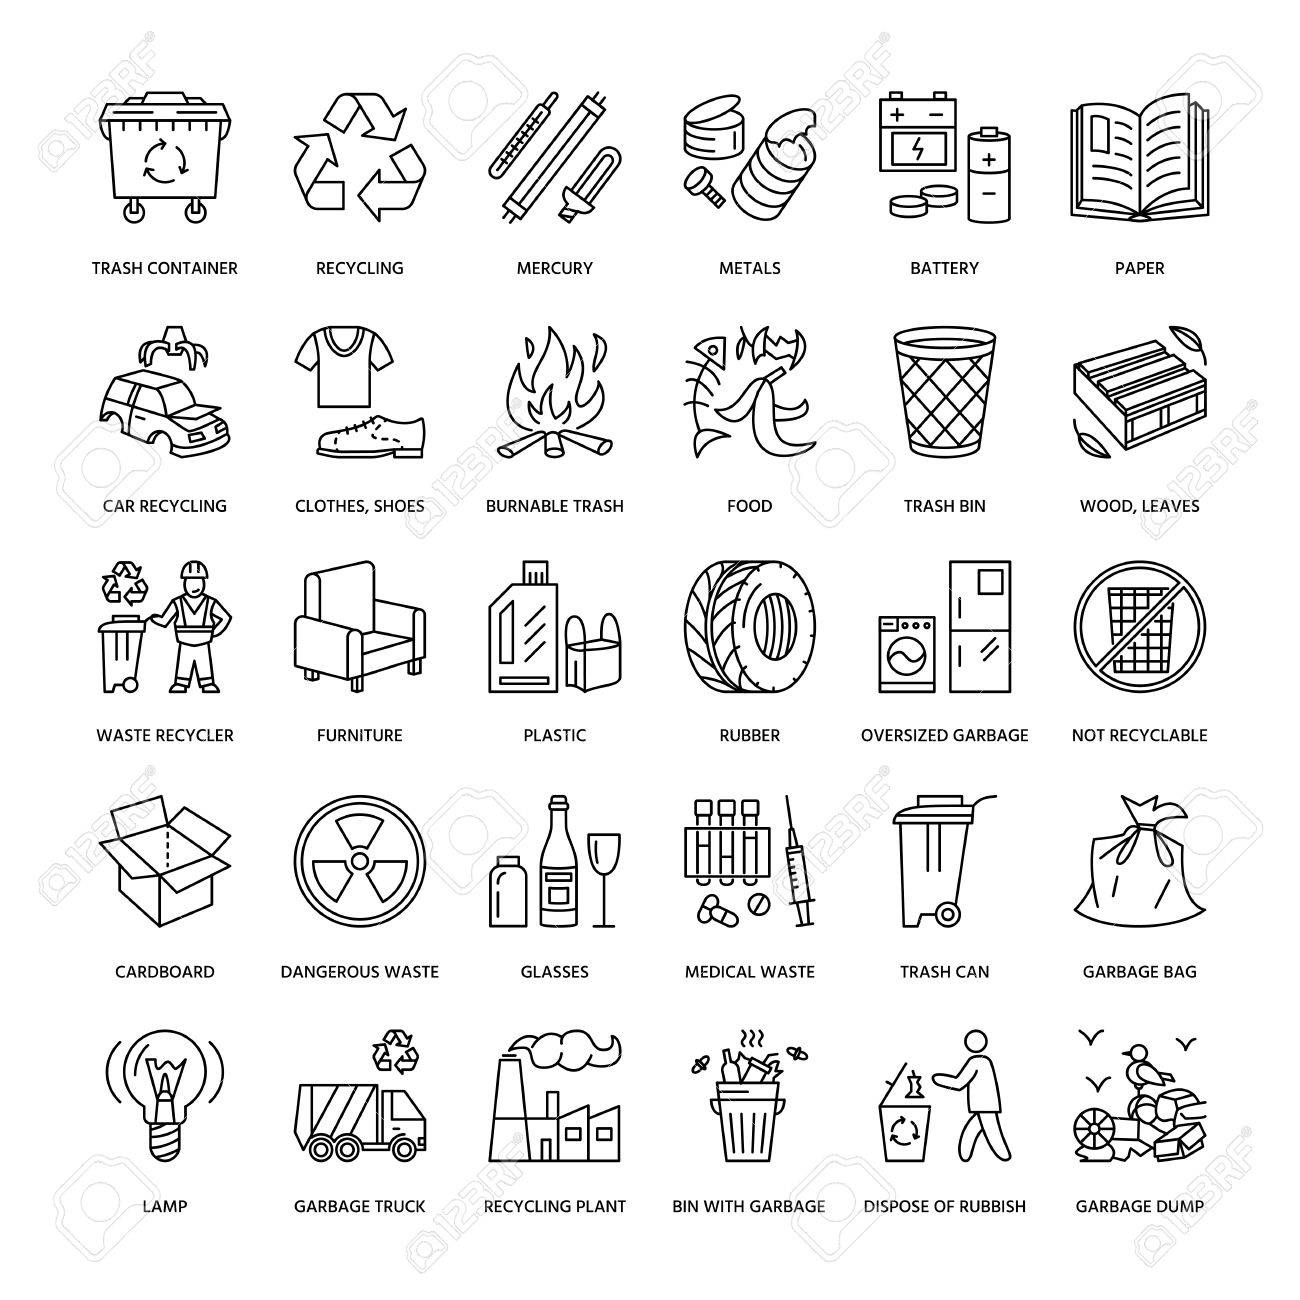 Modern vector line icon of waste sorting, recycling. Garbage collection. Recyclable waste - paper, glass, plastic, metal. Linear pictogram with editable stroke for poster, brochure of waste management - 66482542